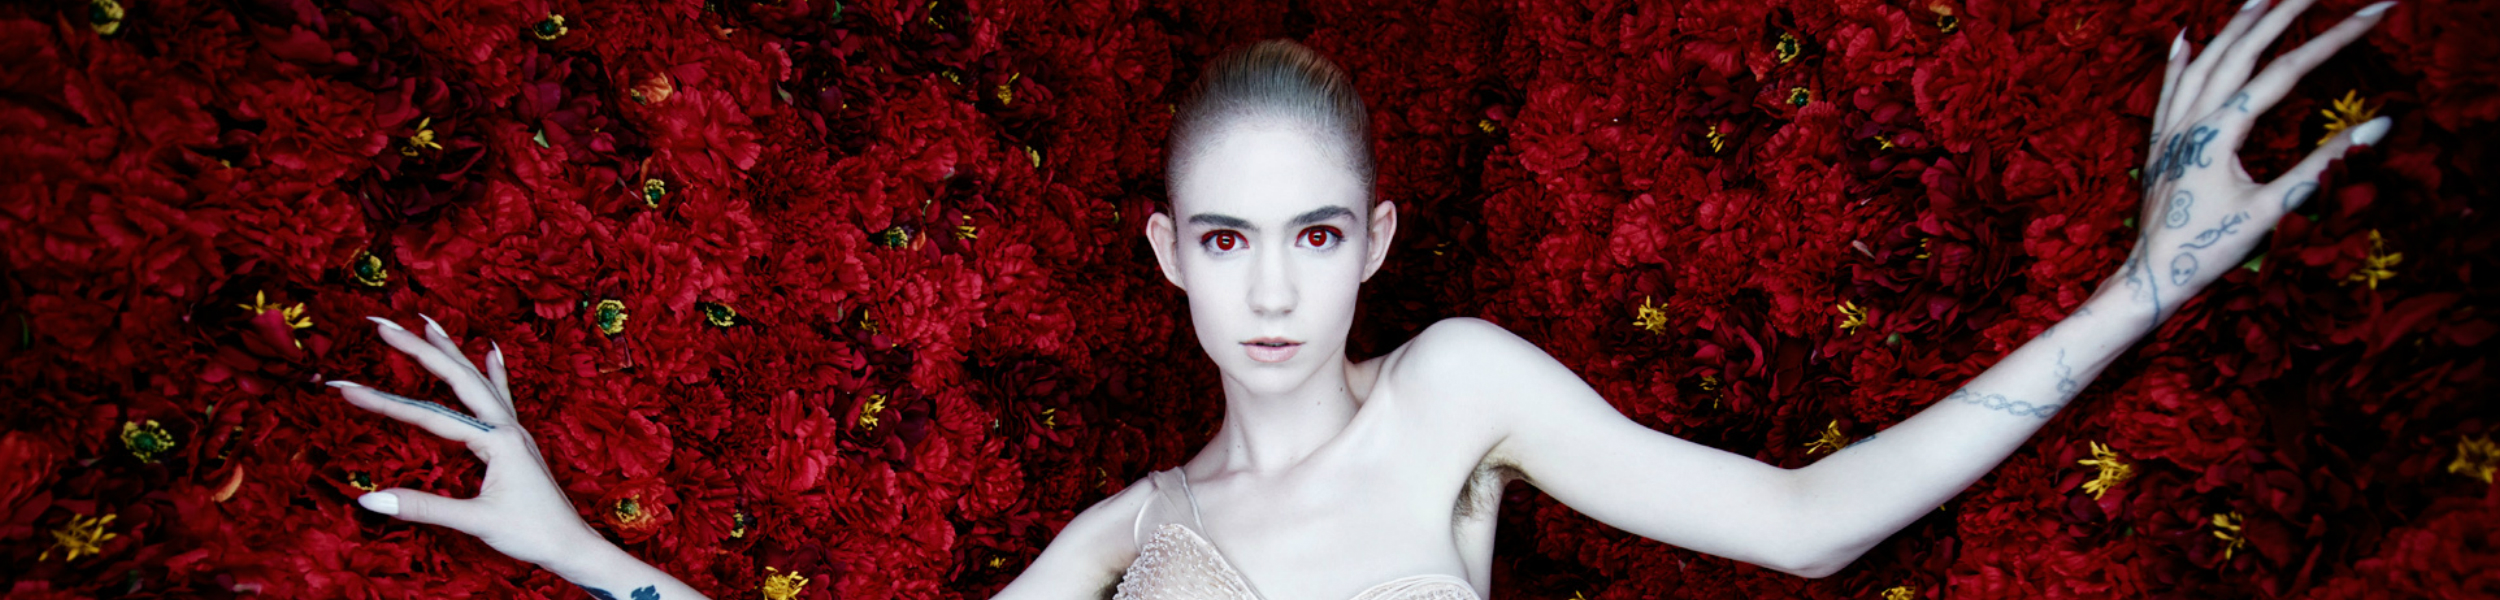 Grimes - Grimes' Visions Announced As Album of the Year at Rough Trade and Resident